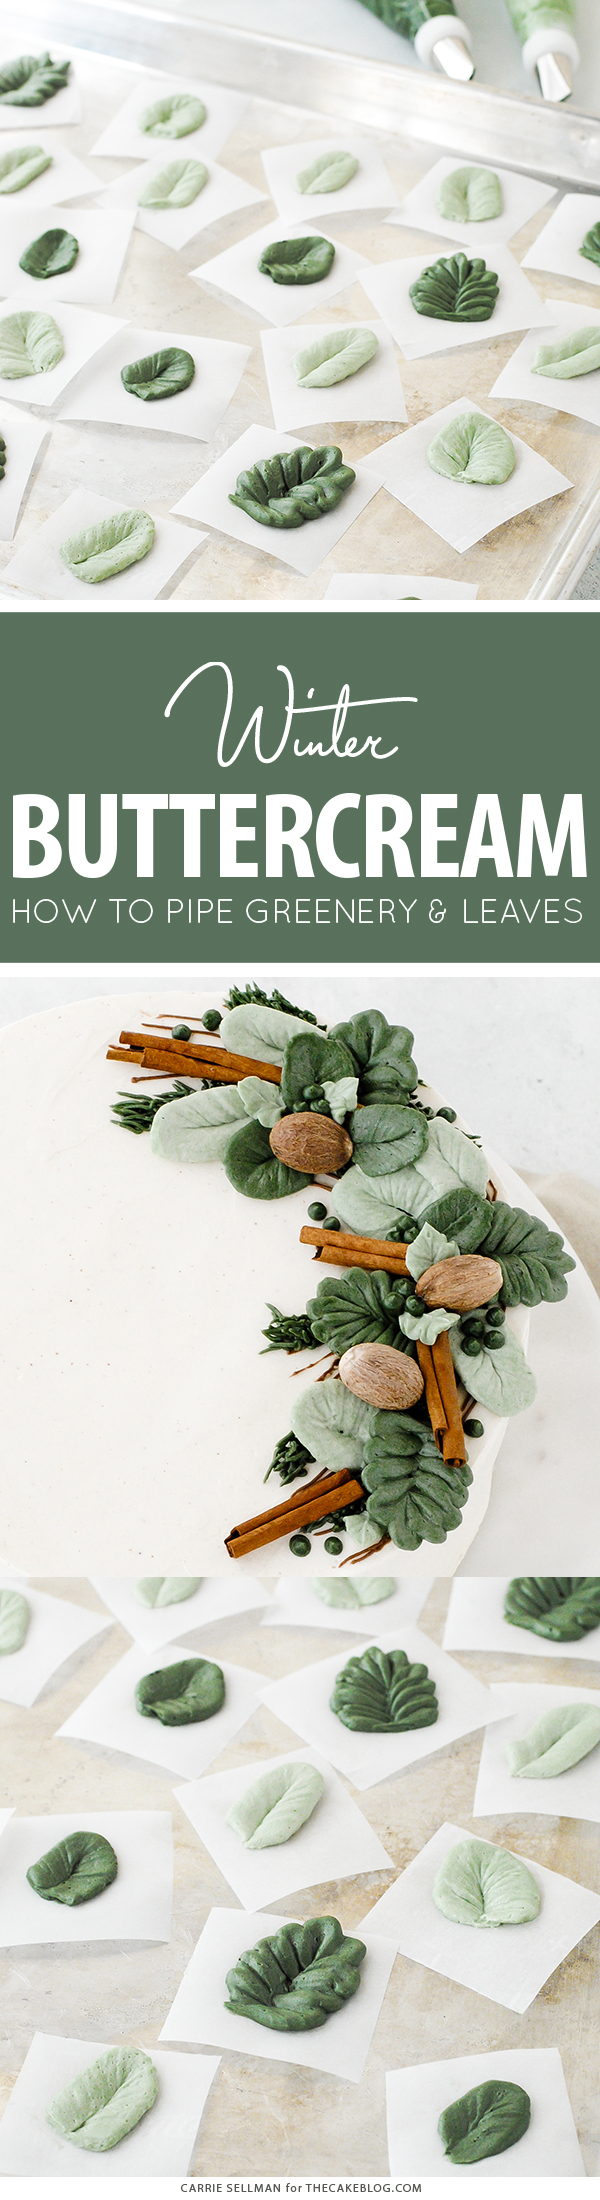 How to pipe buttercream greenery and leaves, with video | by Carrie Sellman for TheCakeBlog.com